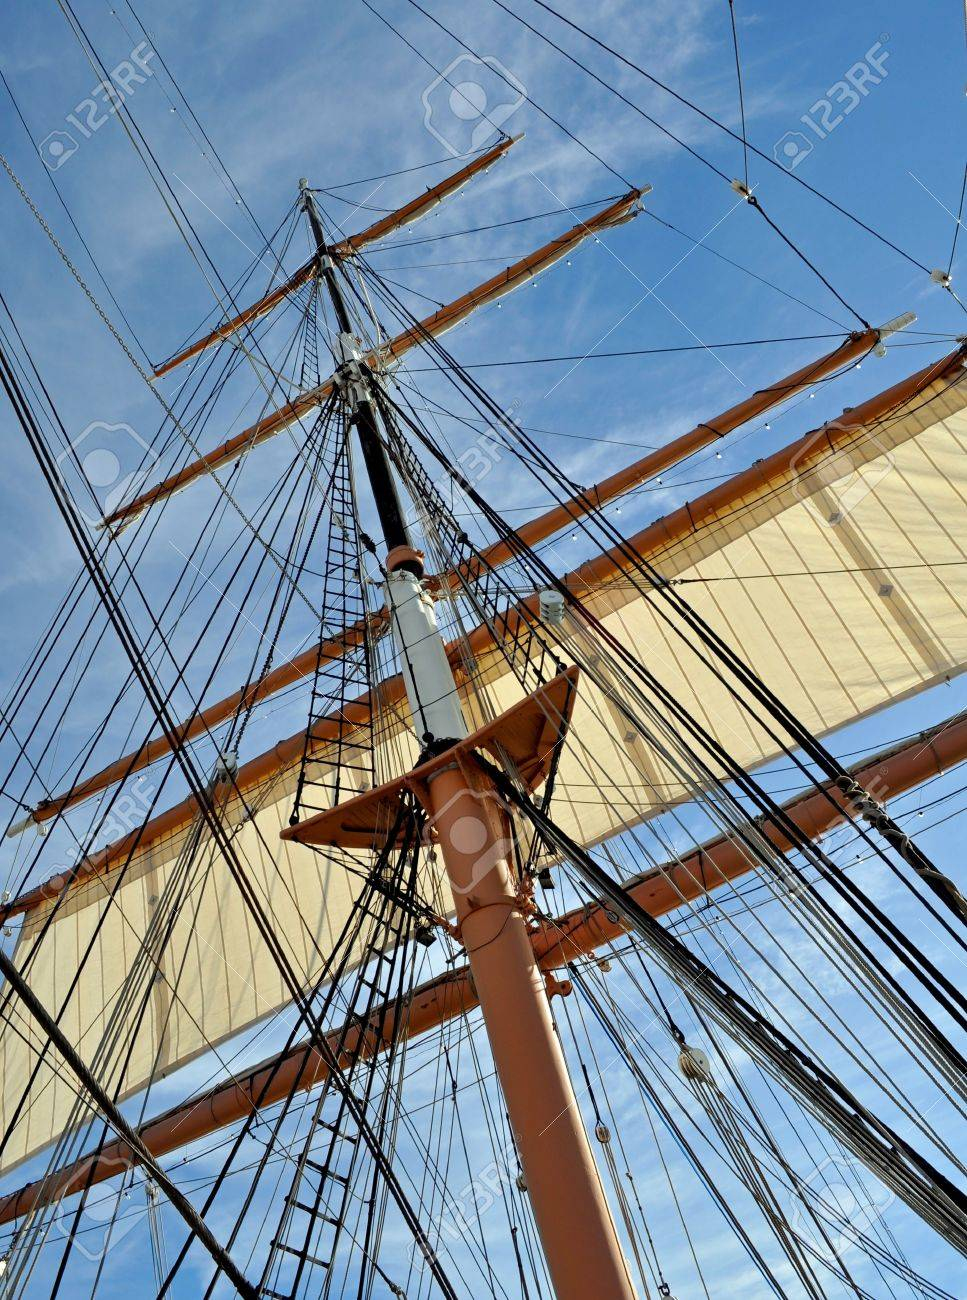 The Mast and Rigging of a Tall Sailing Ship. Stock Photo - 8833351